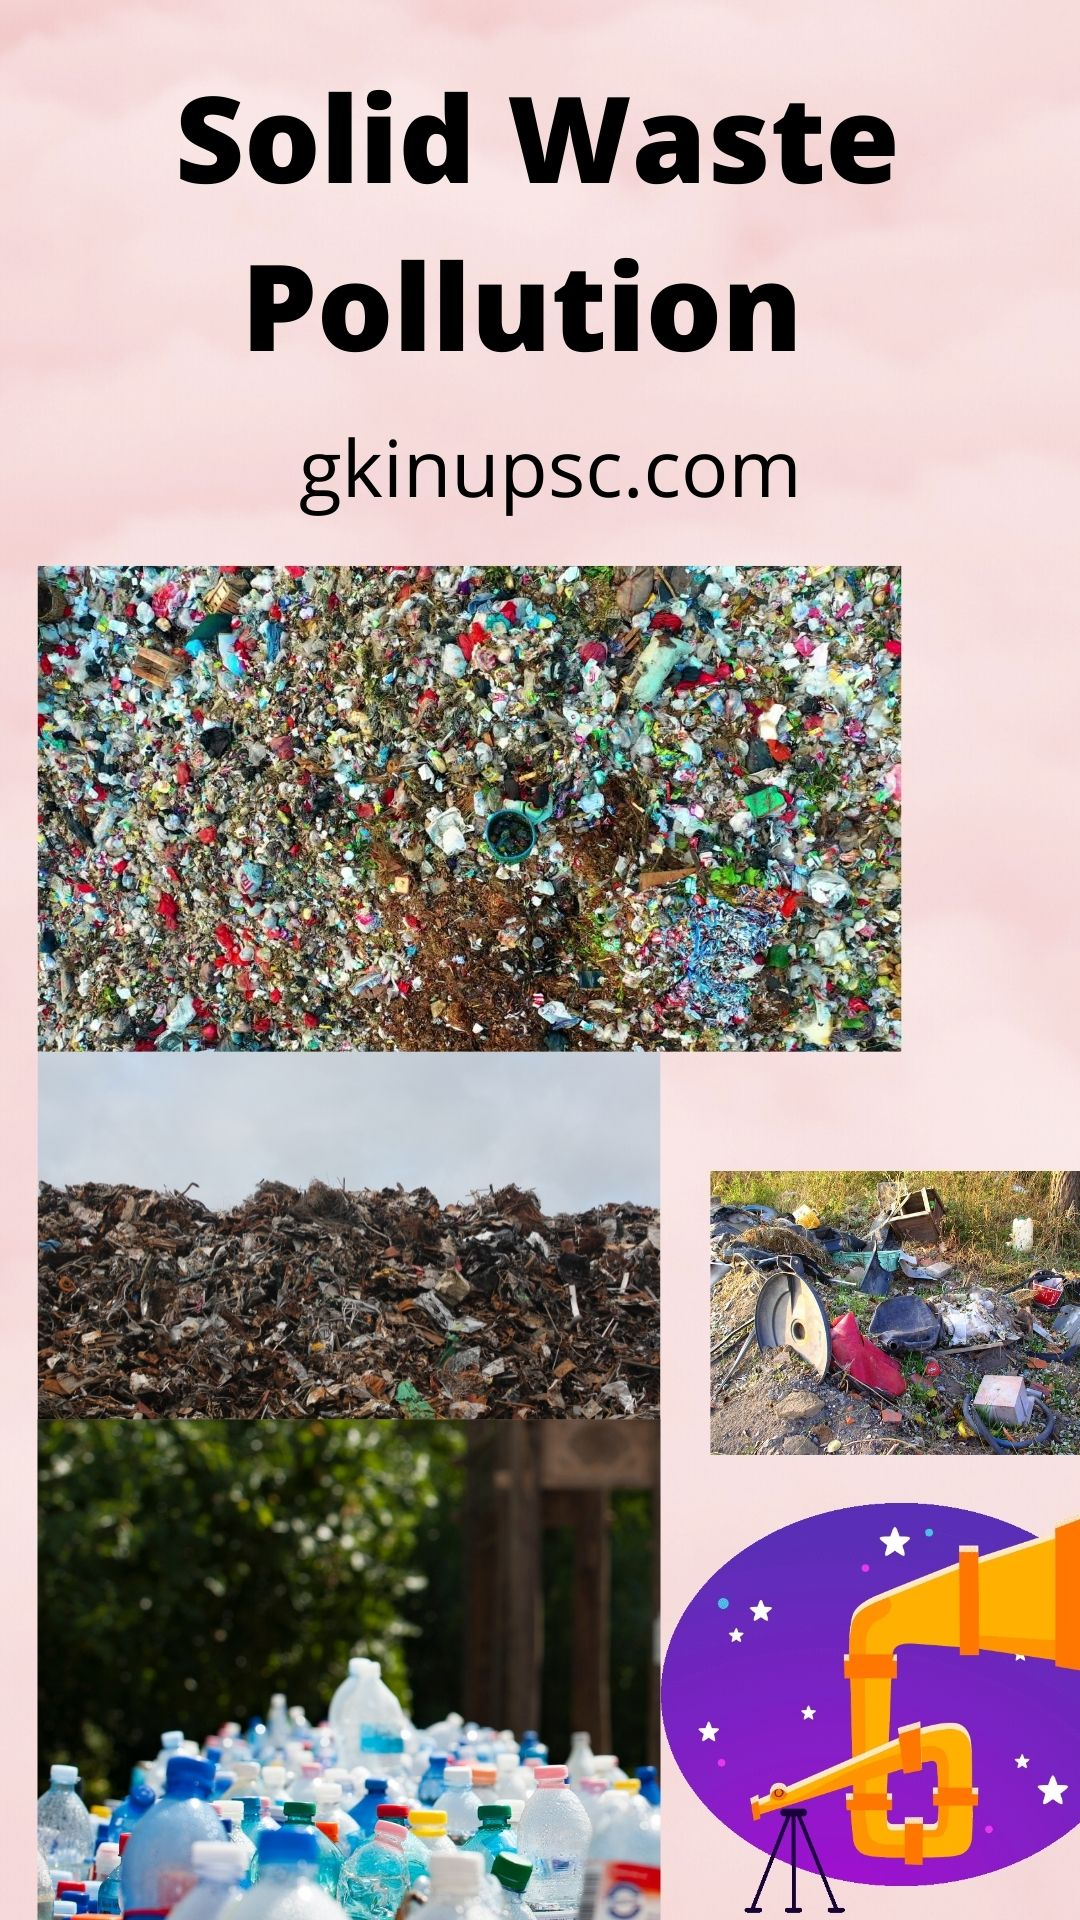 Solid Waste Pollution